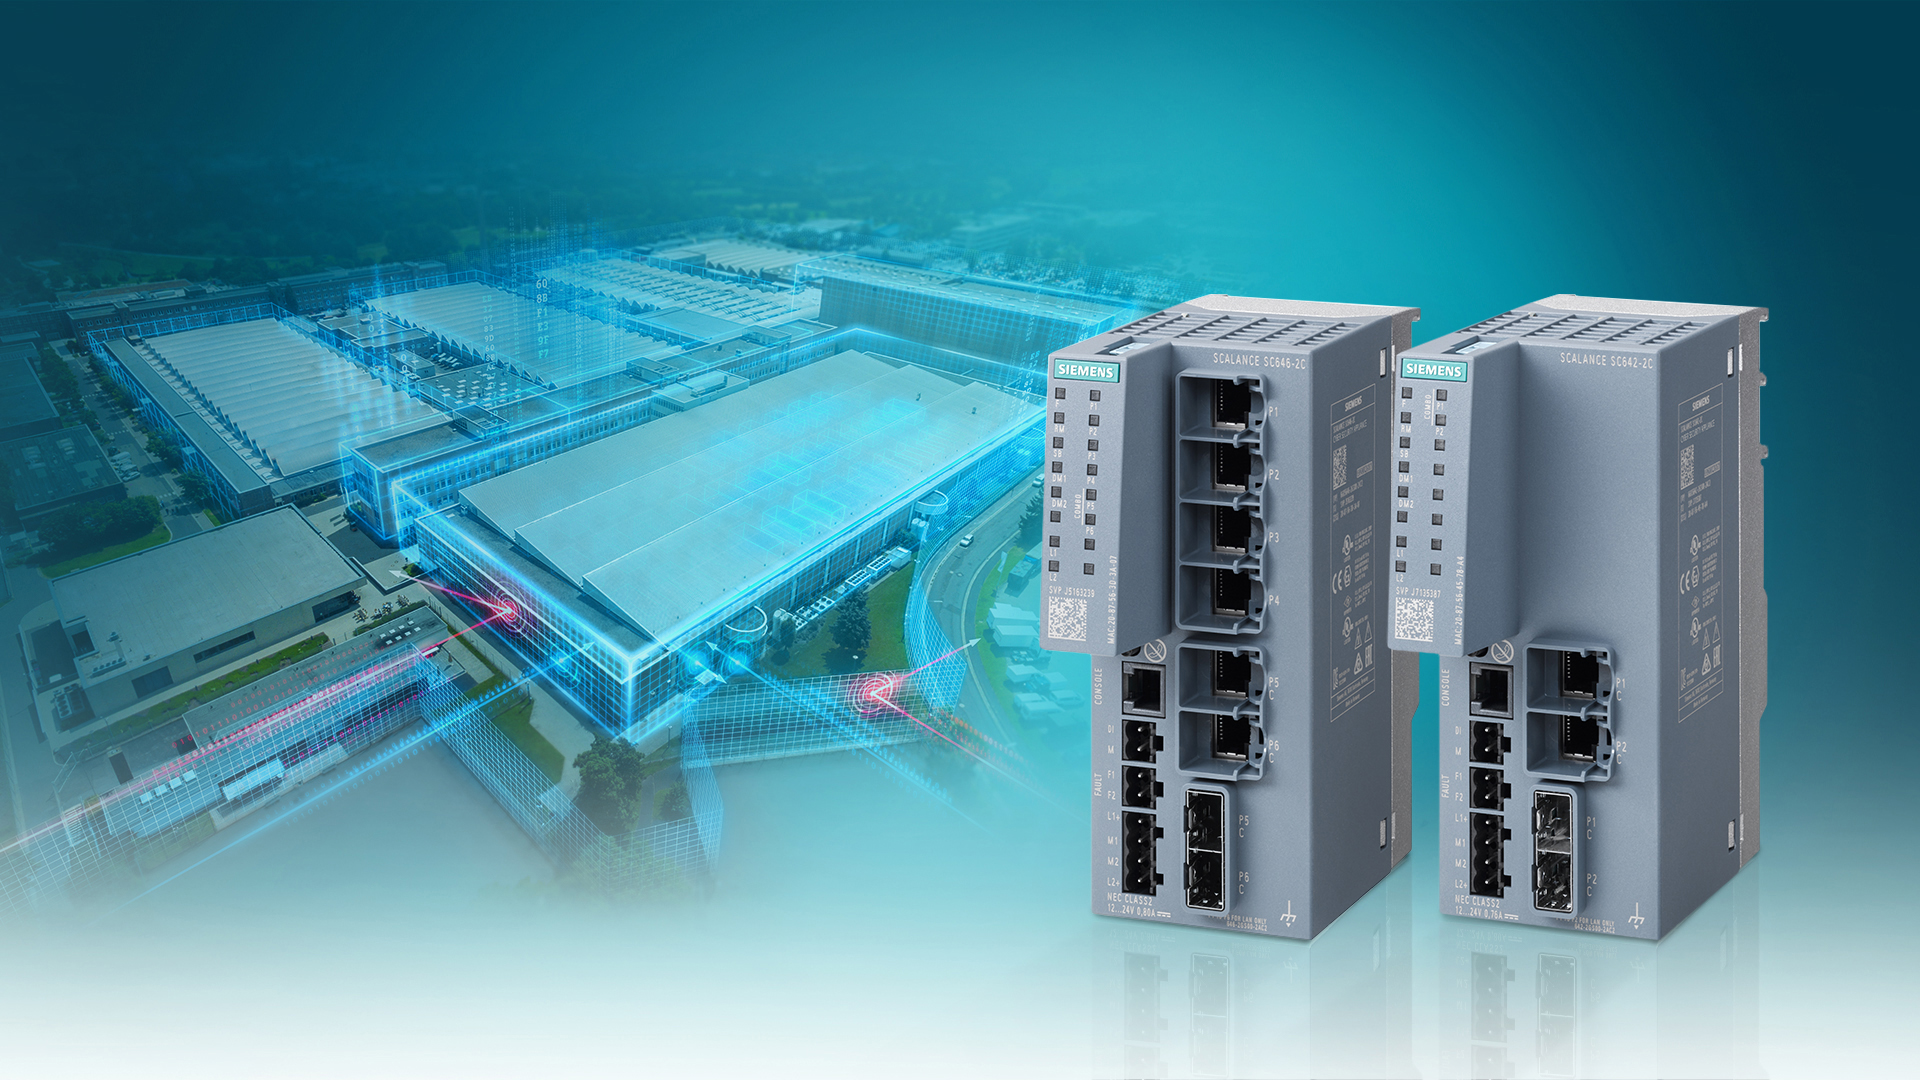 Siemens has extended the Scalance SC-600 Industrial Security Appliances to include more functionality for even better and simpler protection of production networks.